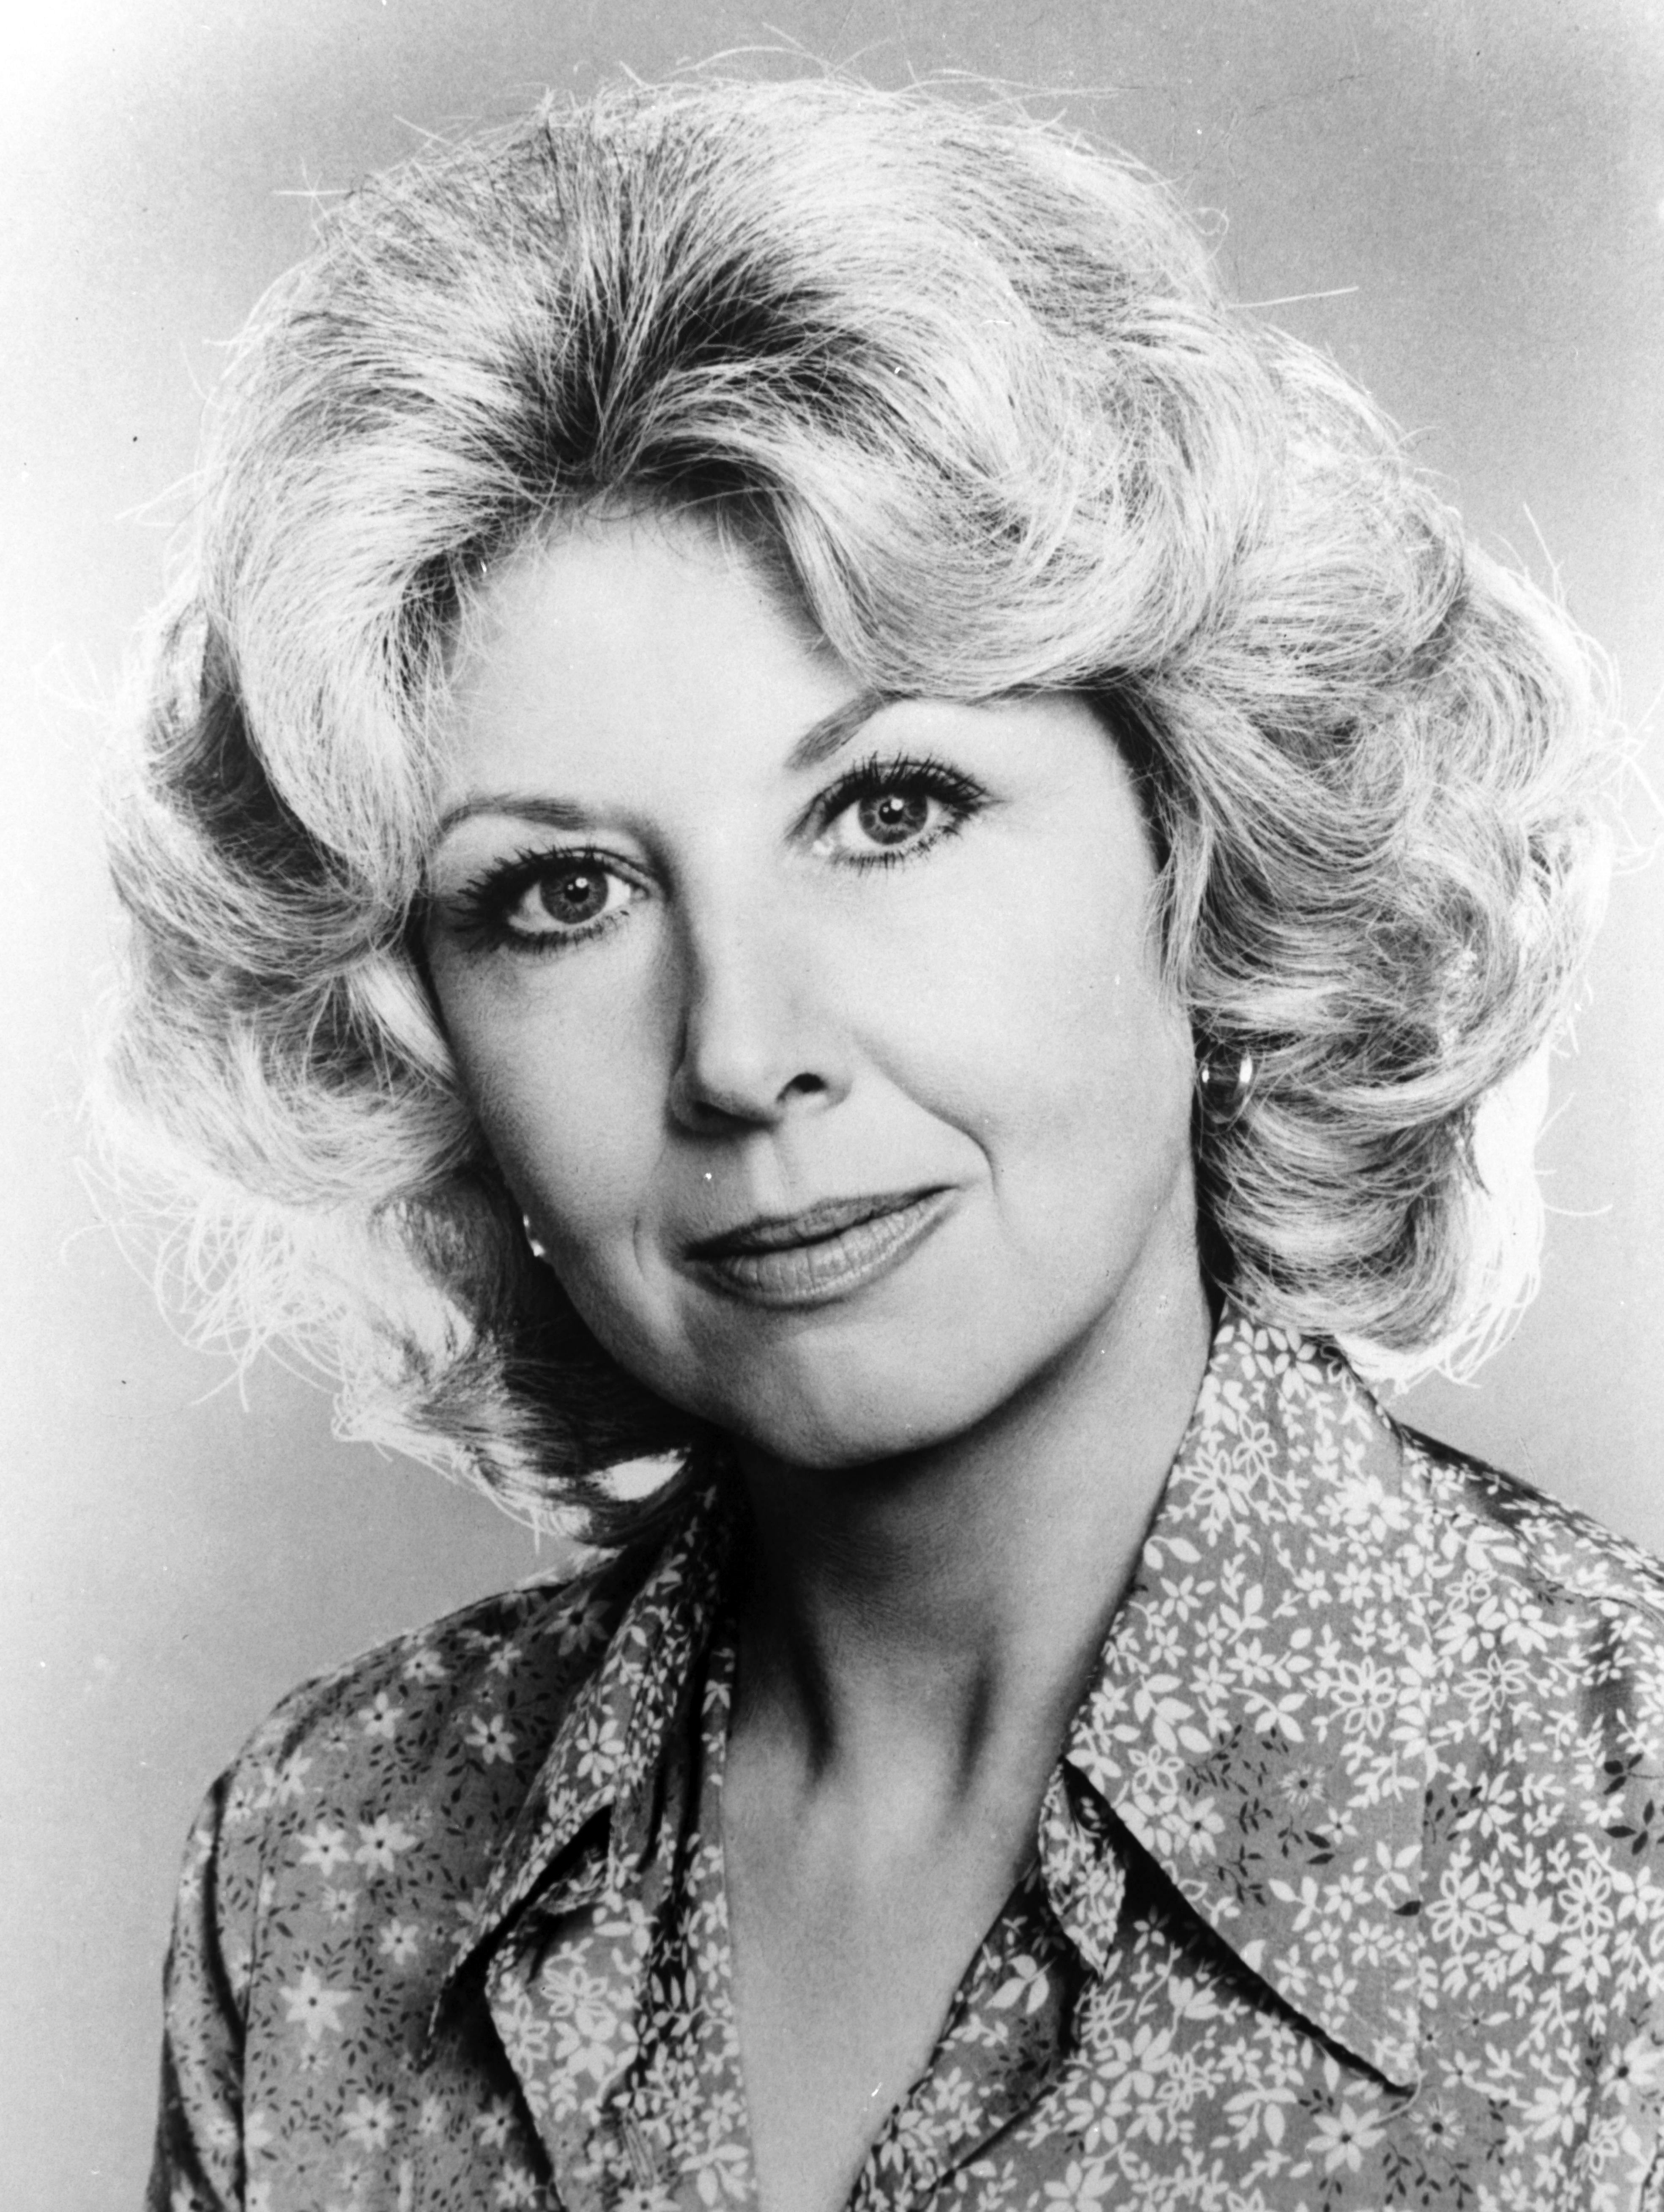 Michael Learned takes a portrait in the 1970s | Photo: Getty Images